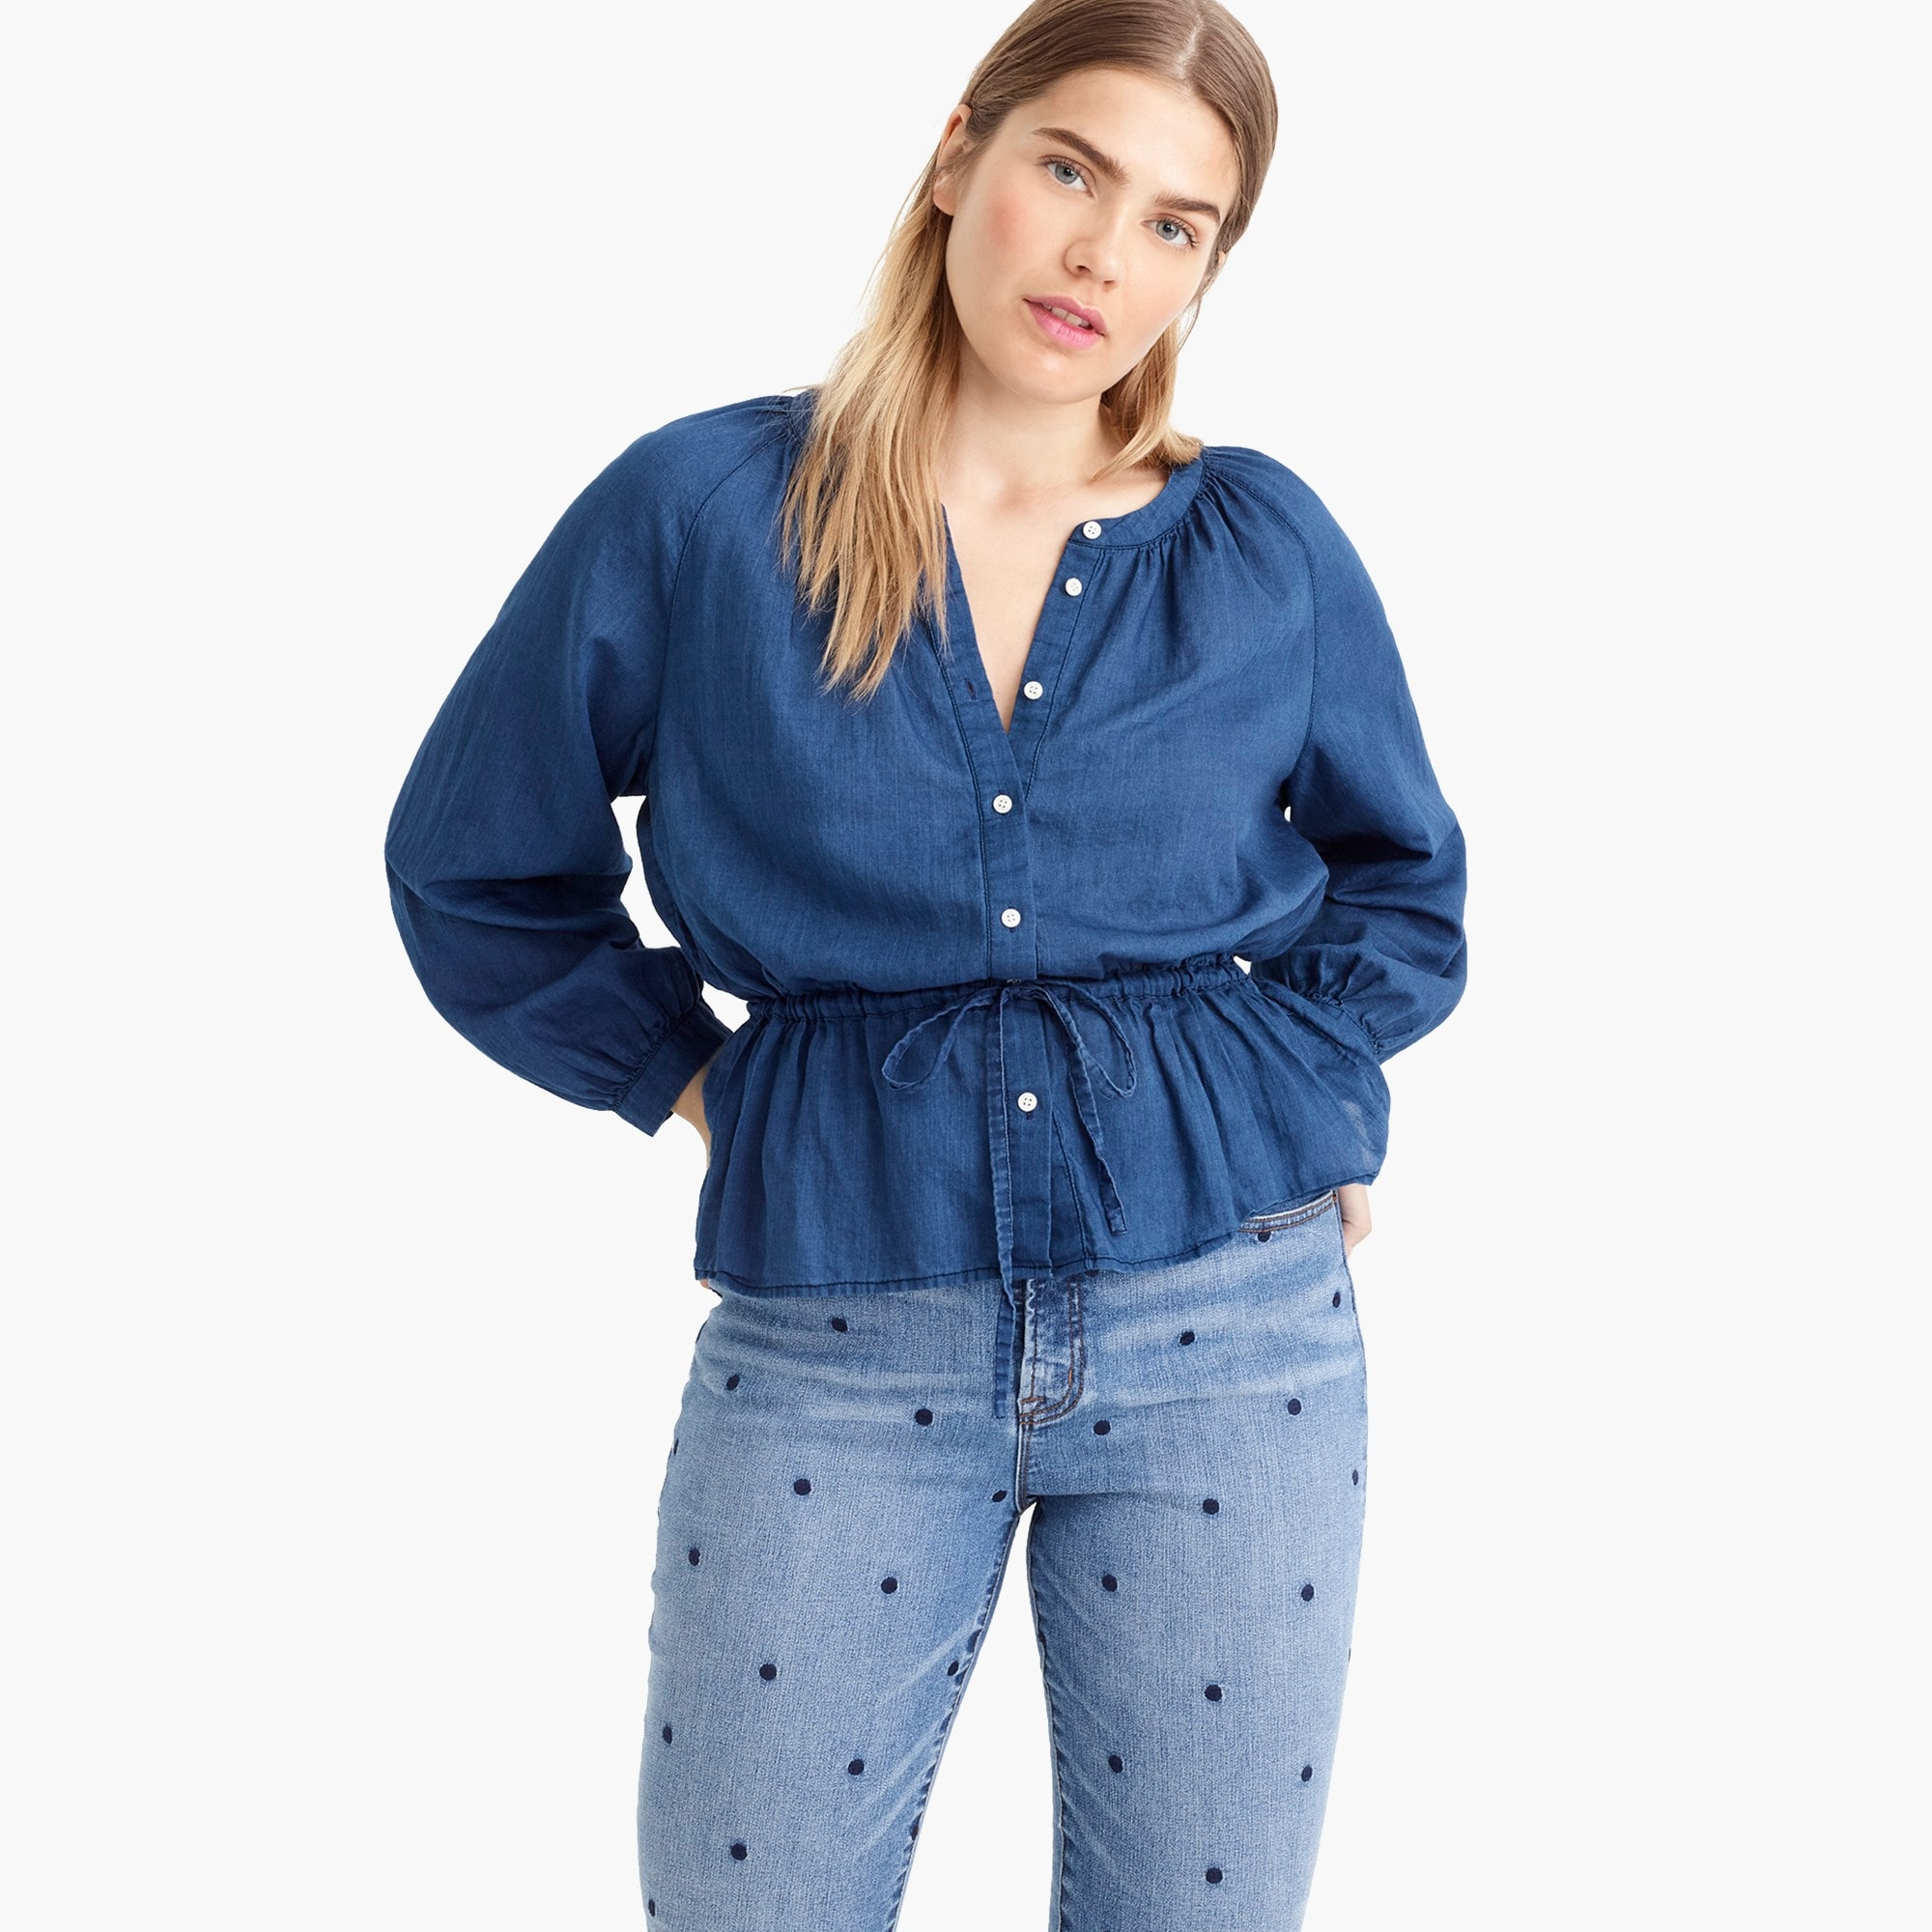 Image 2 for Tall tie-waist top in indigo gauze